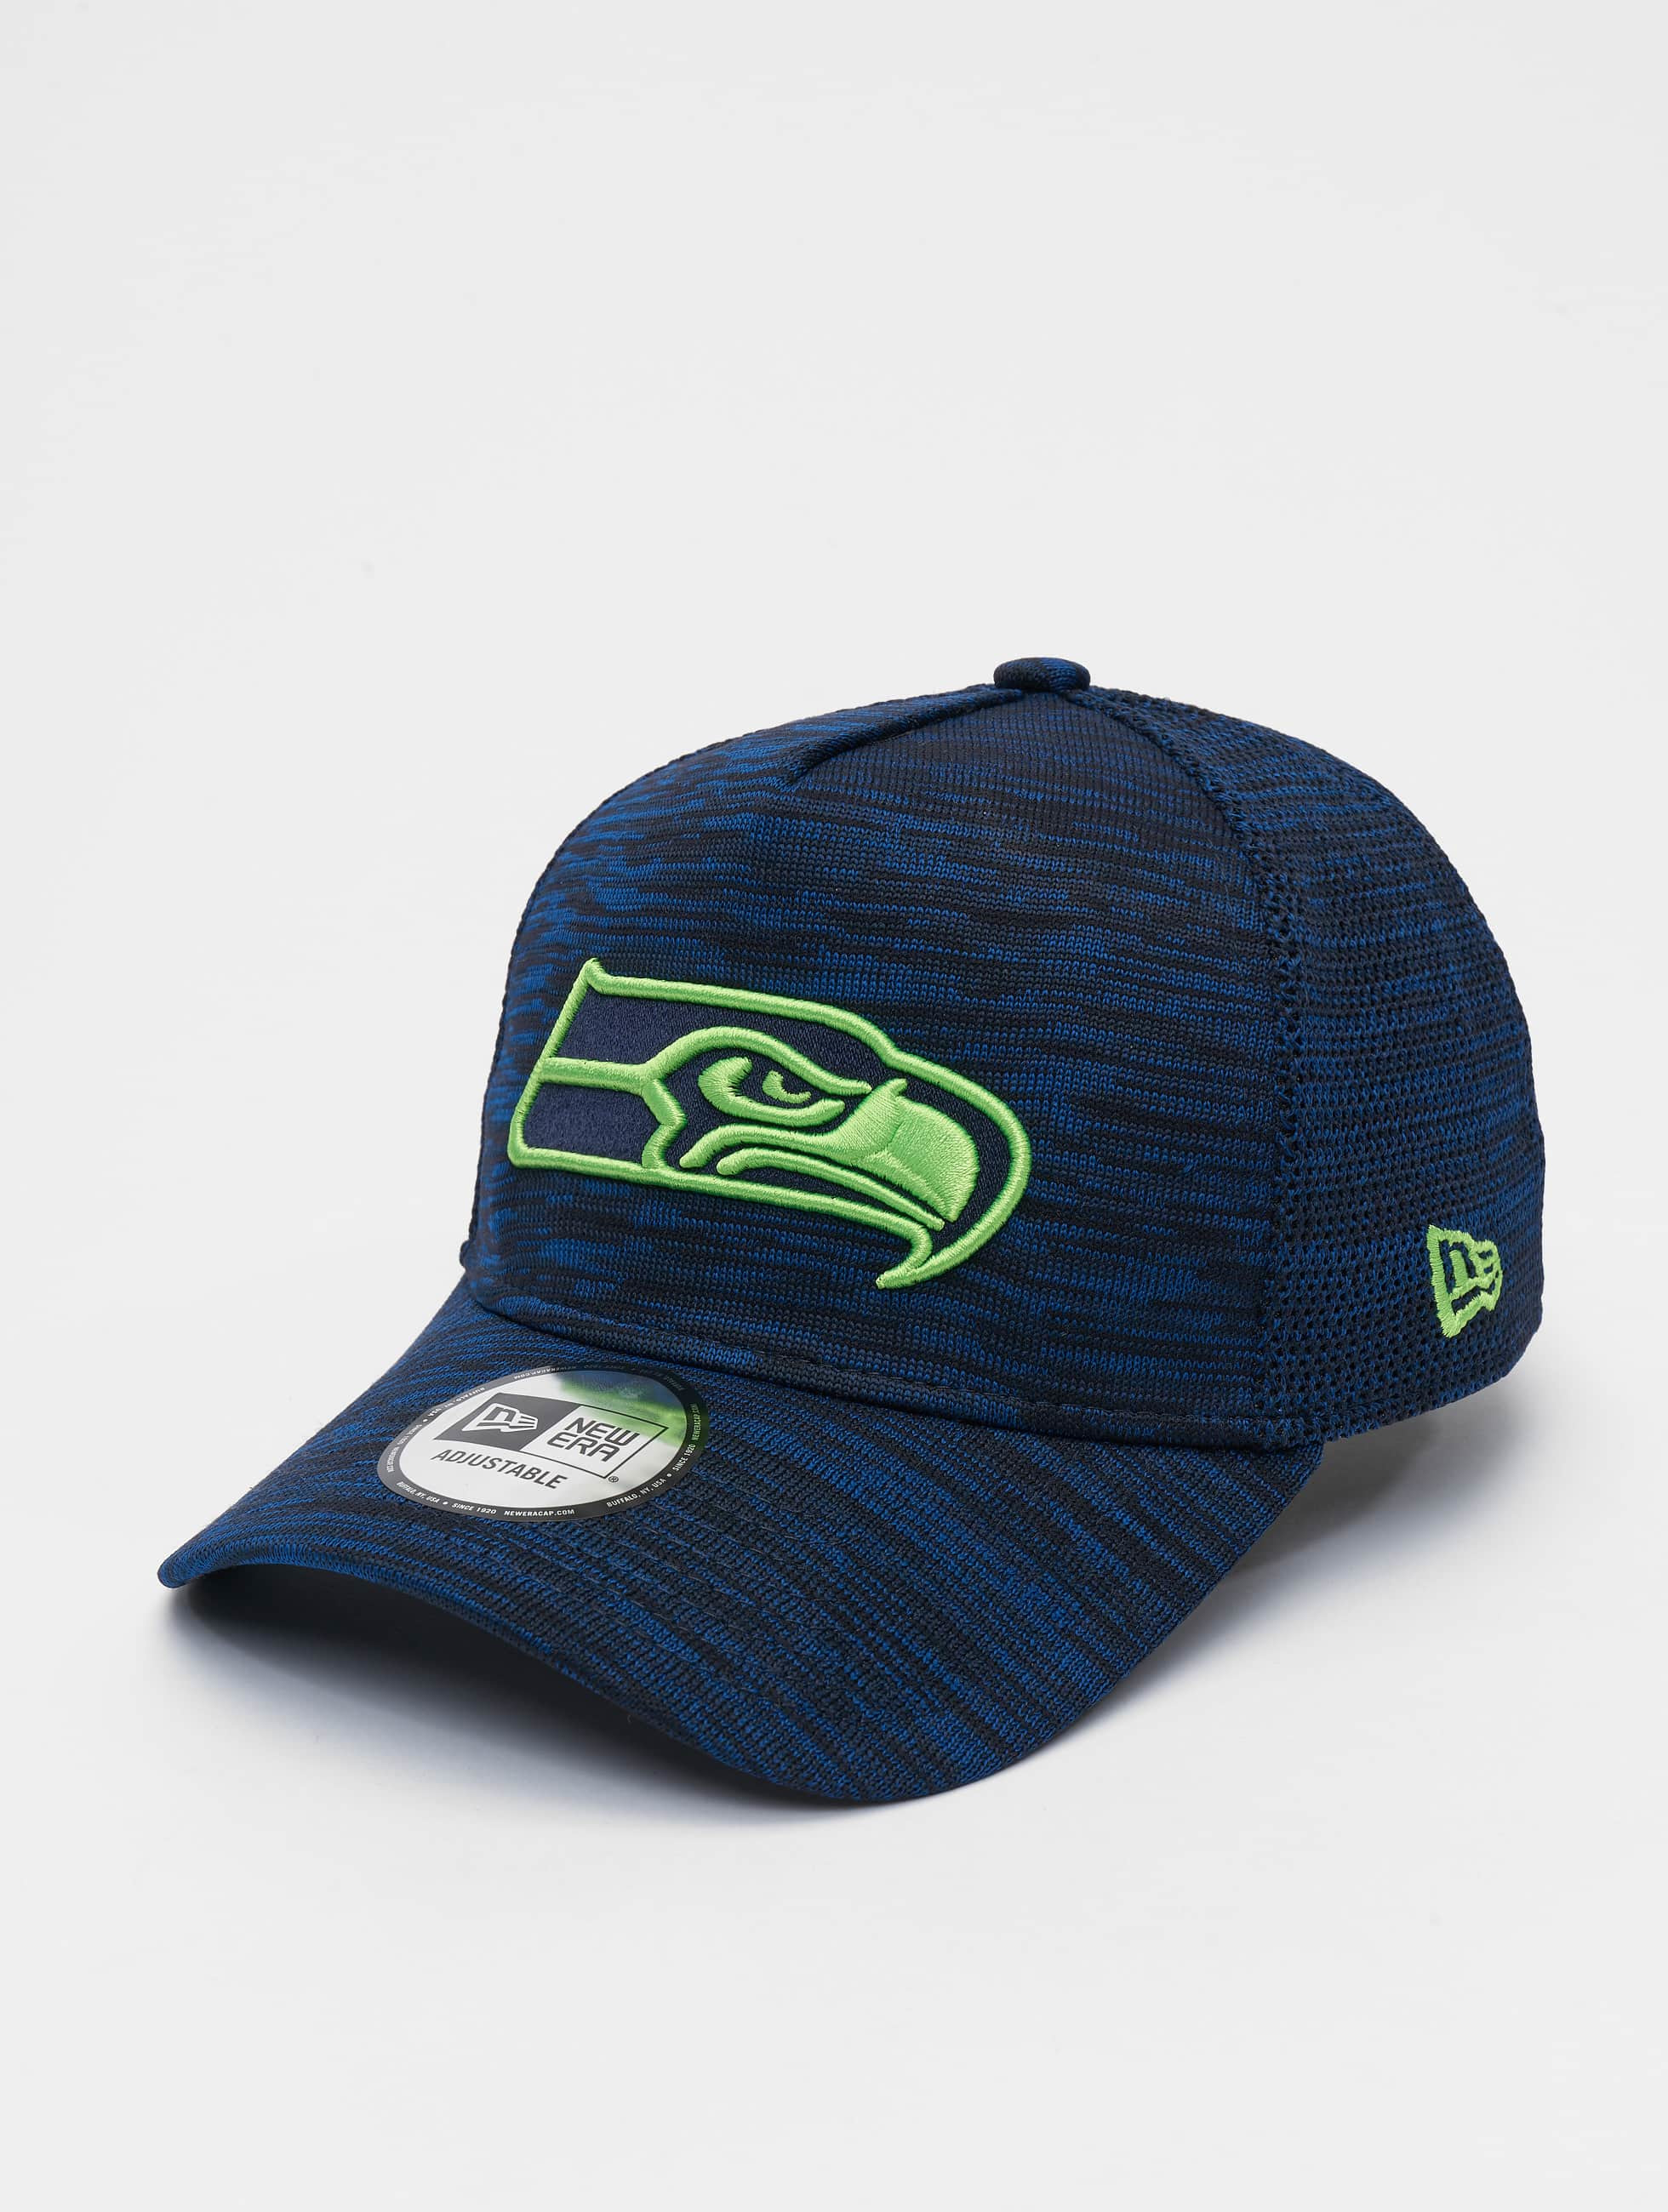 97cf6f4b7f40a New Era | NFL Seattle Seahawks Engineered Fit 9forty A-Frame bleu Casquette  Snapback & Strapback 647787